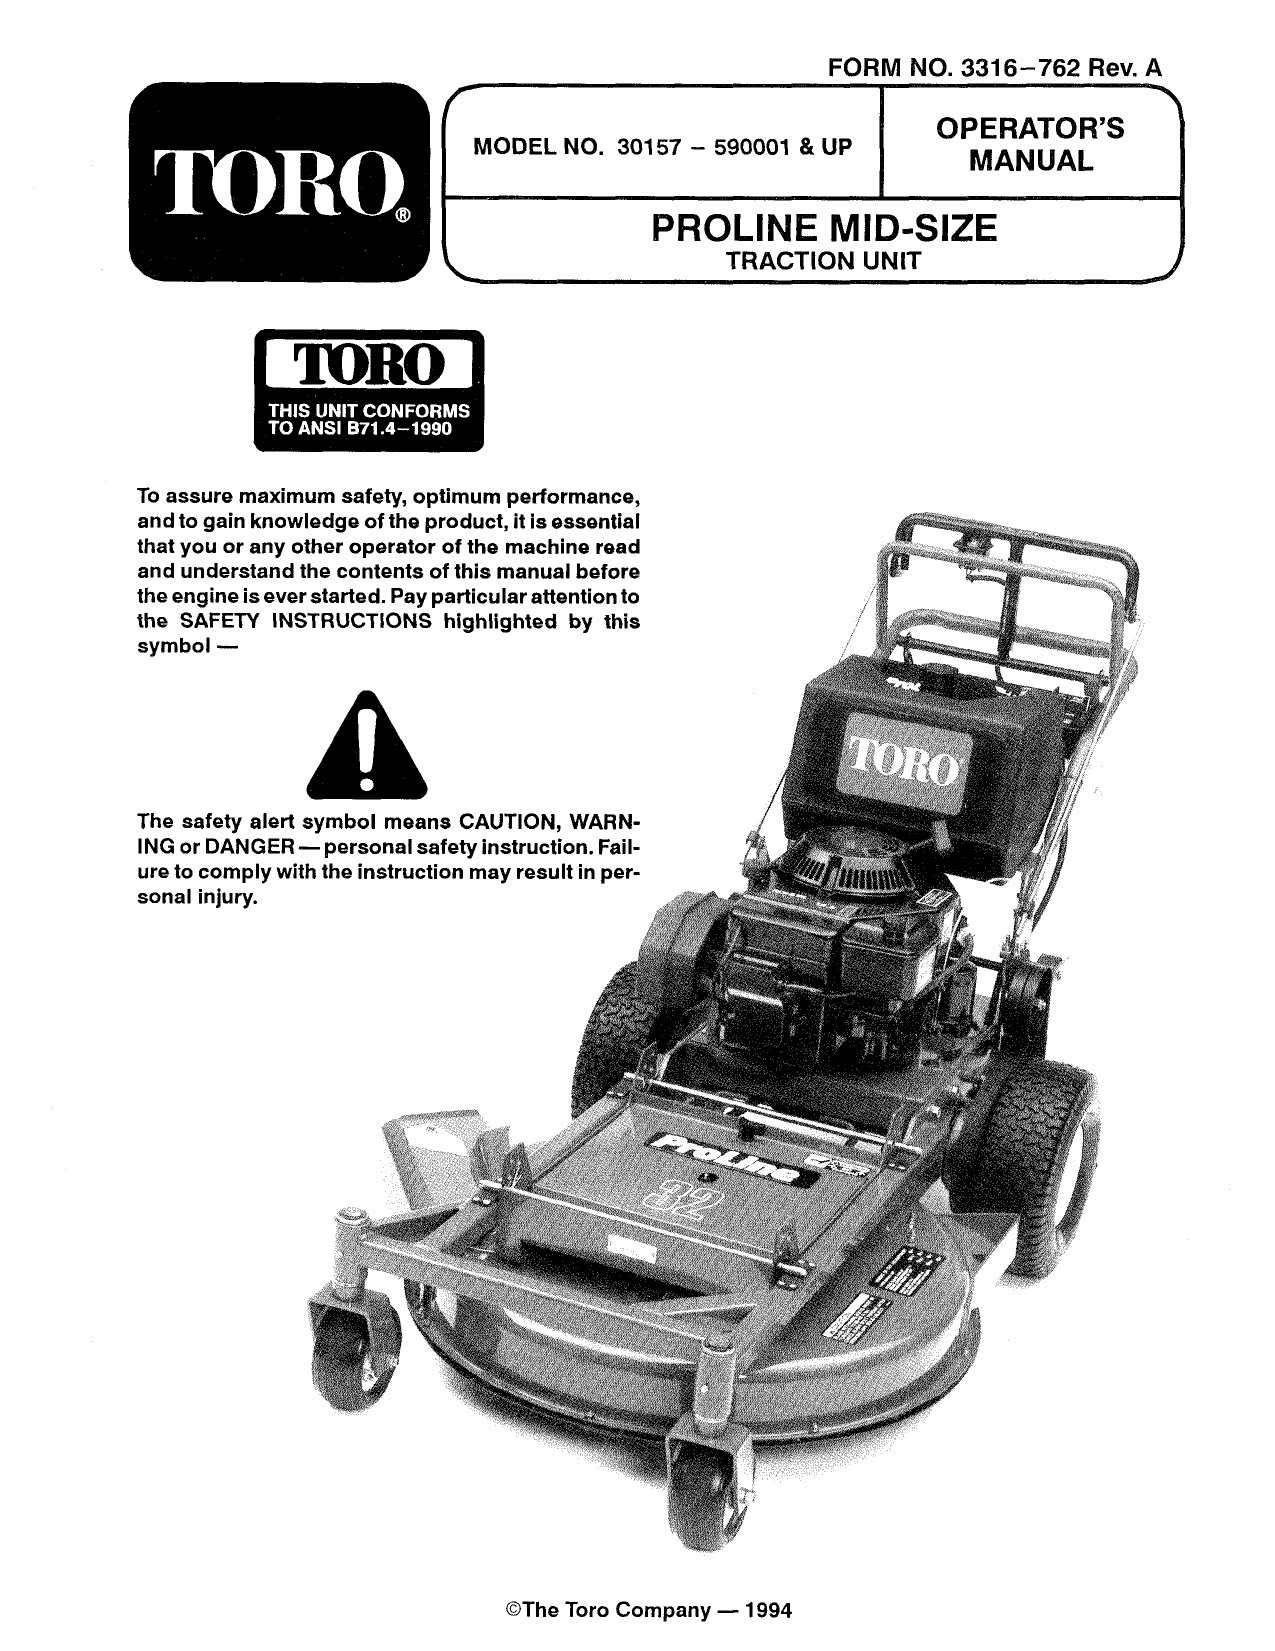 Toro Mid-Size Proline Gear Traction Unit, 12.5 hp Walk